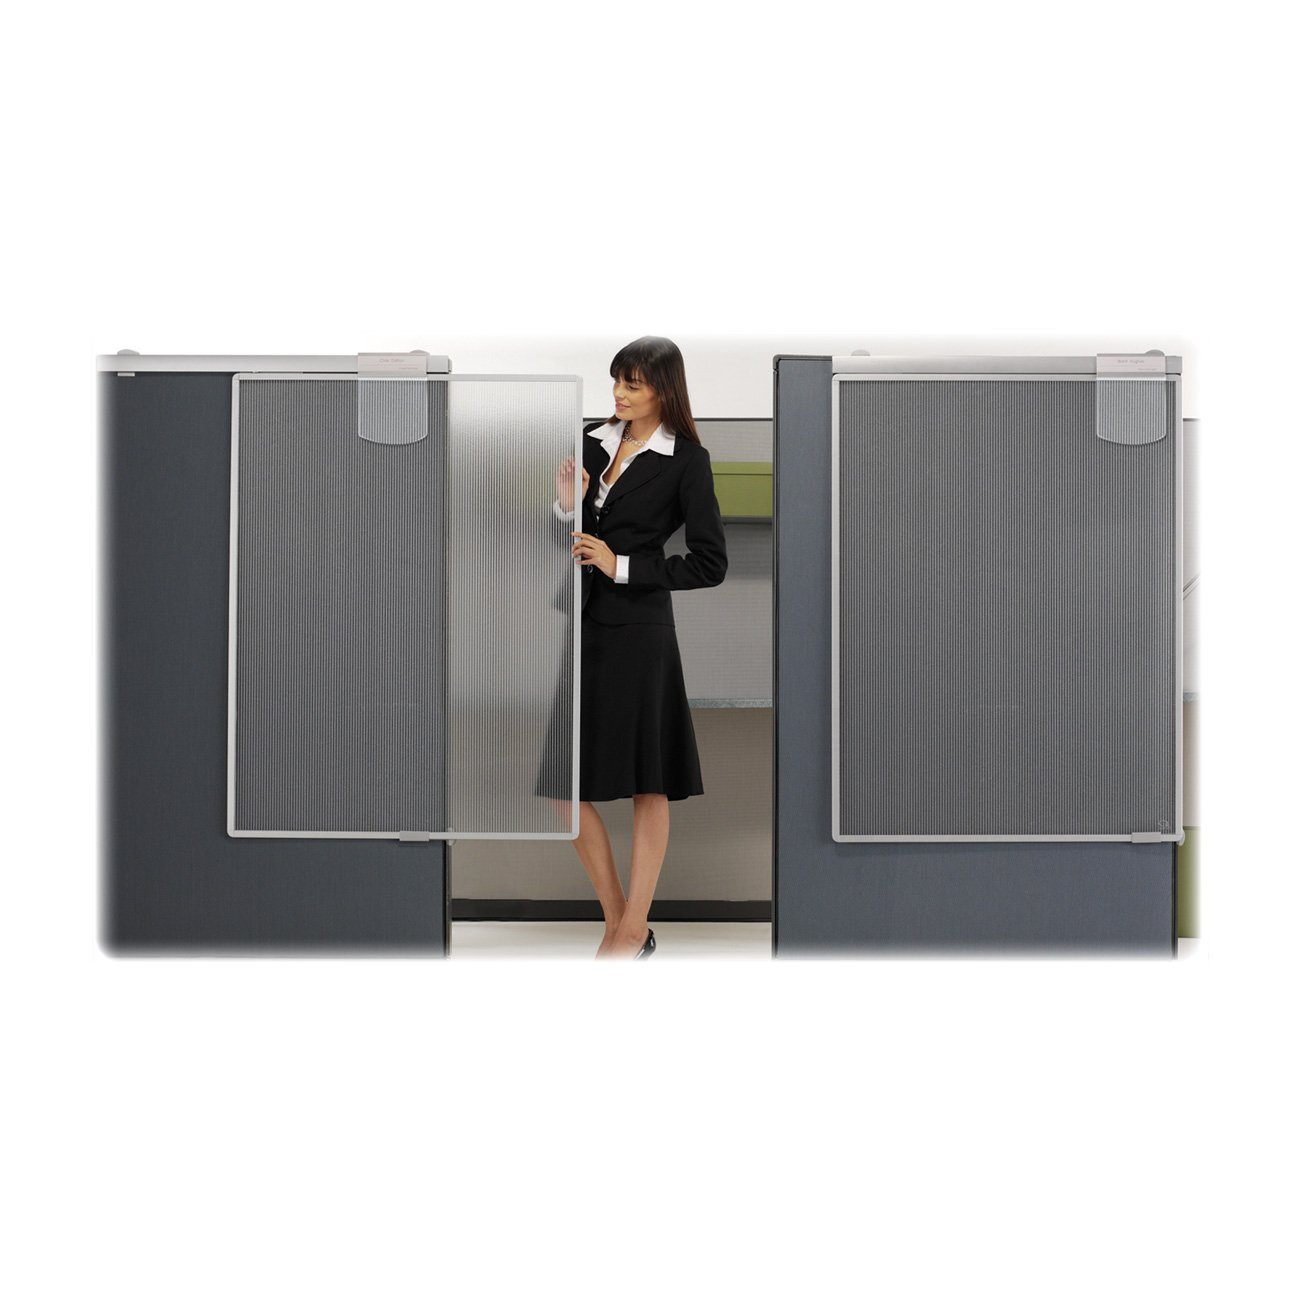 Temporary Office Partition  office inspiration  Temporary Office Partitions office inspiration on pinterest glass  . Temporary Wall Partitions For Office. Home Design Ideas